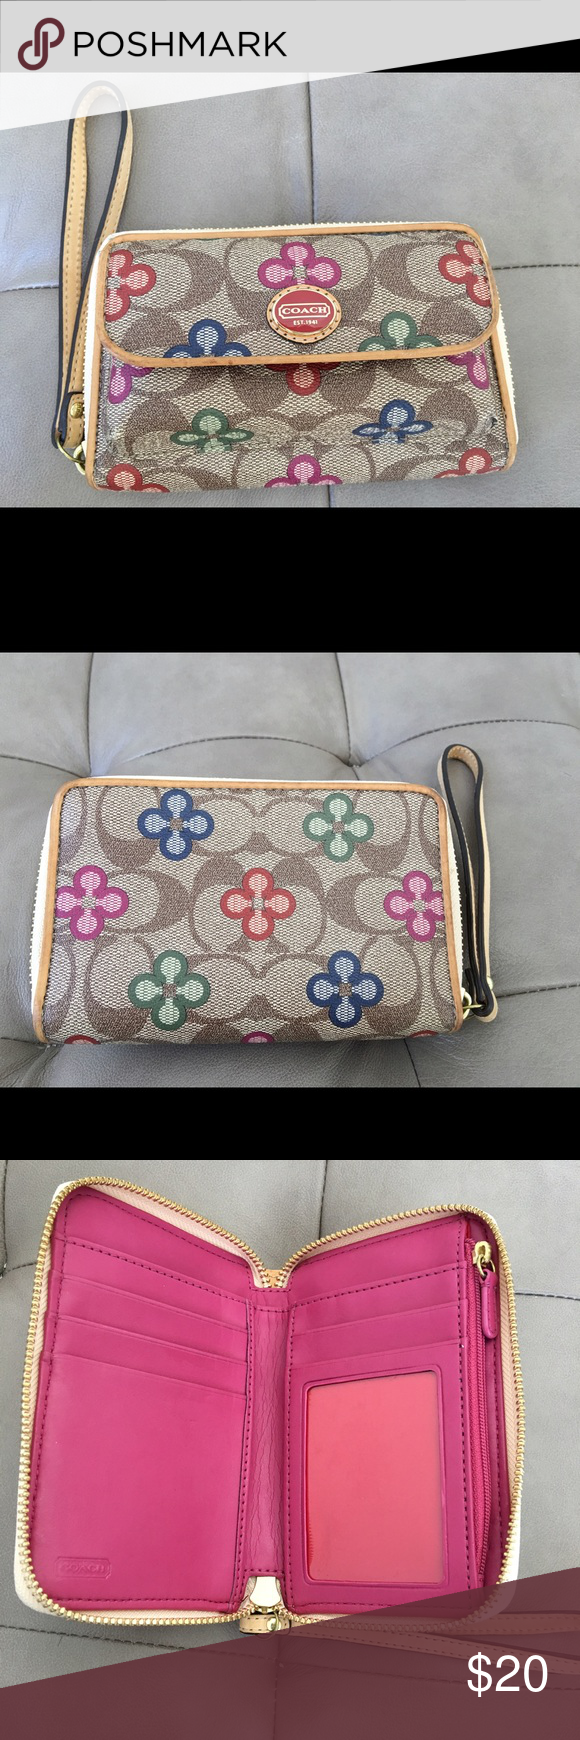 Coach wristlet Cute Coach Wristlet. Outer pocket with magnetic closure can hold lipstick, lipgloss, or other small items. Inside has zippered coin purse, window for ID, multiple places for cards, and large slot for money. Coach Bags Clutches & Wristlets